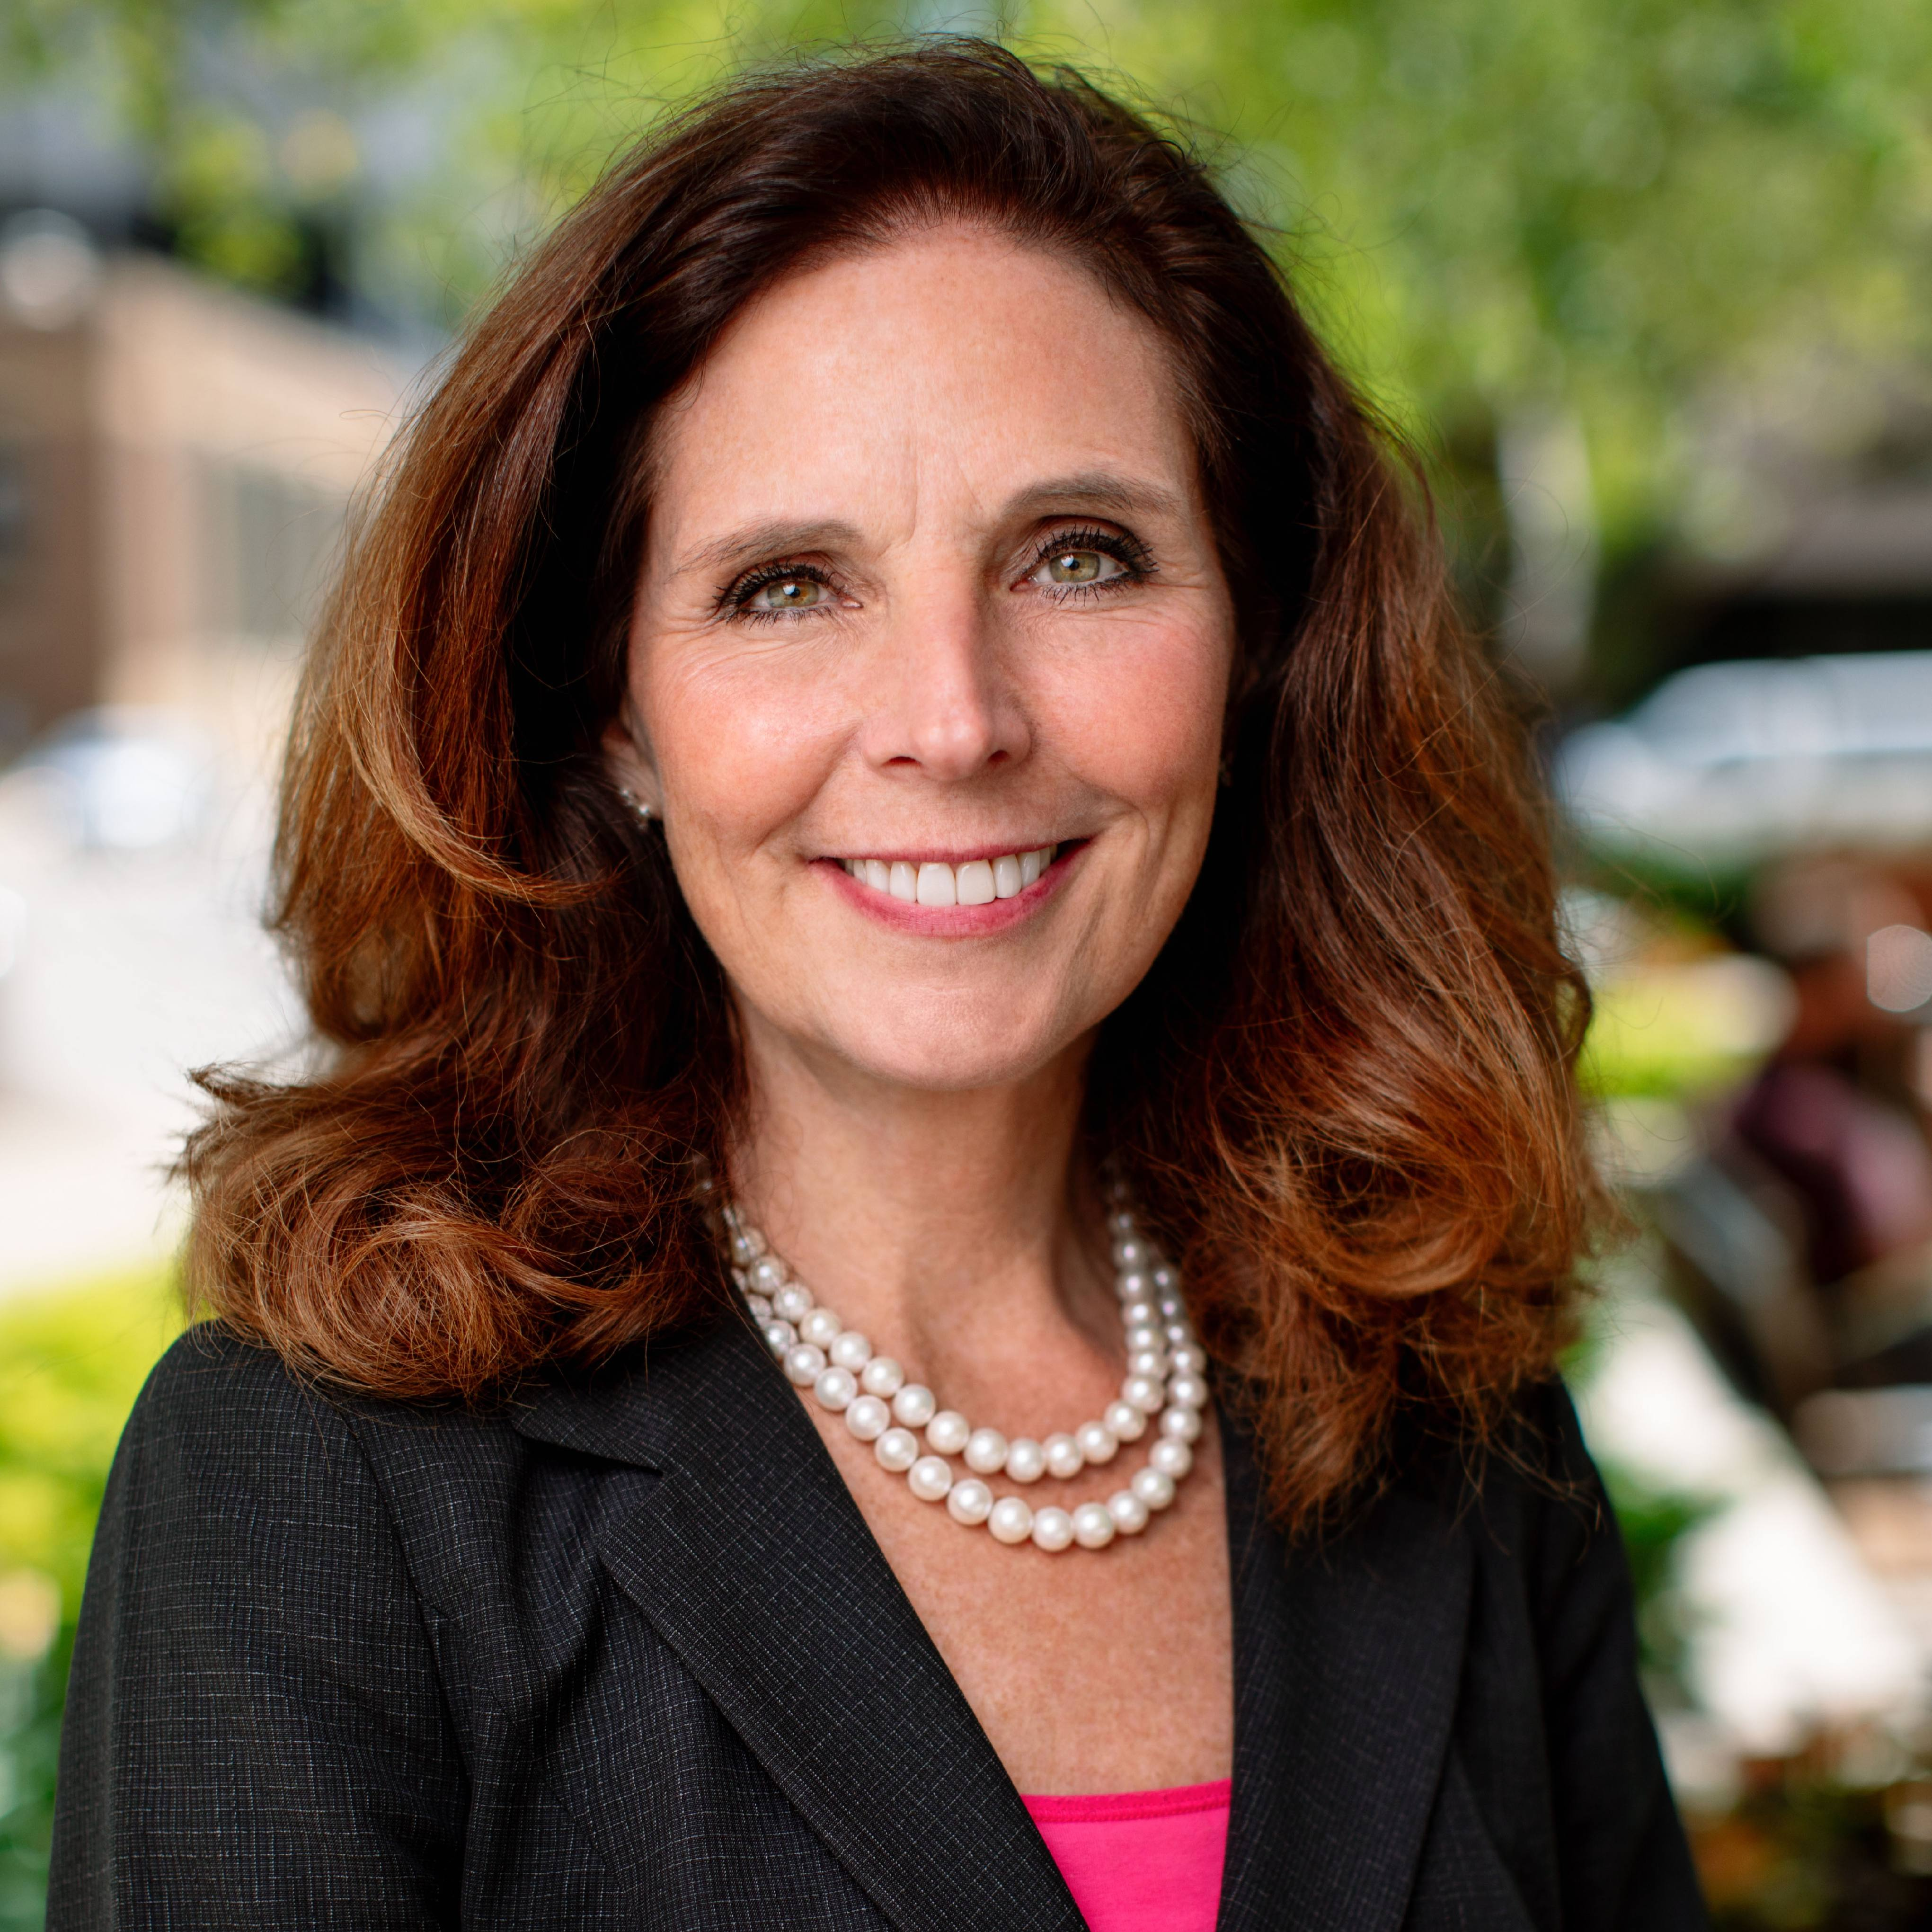 Dr. Amy Williams outside, wearing a professional suit with pearls, smiling